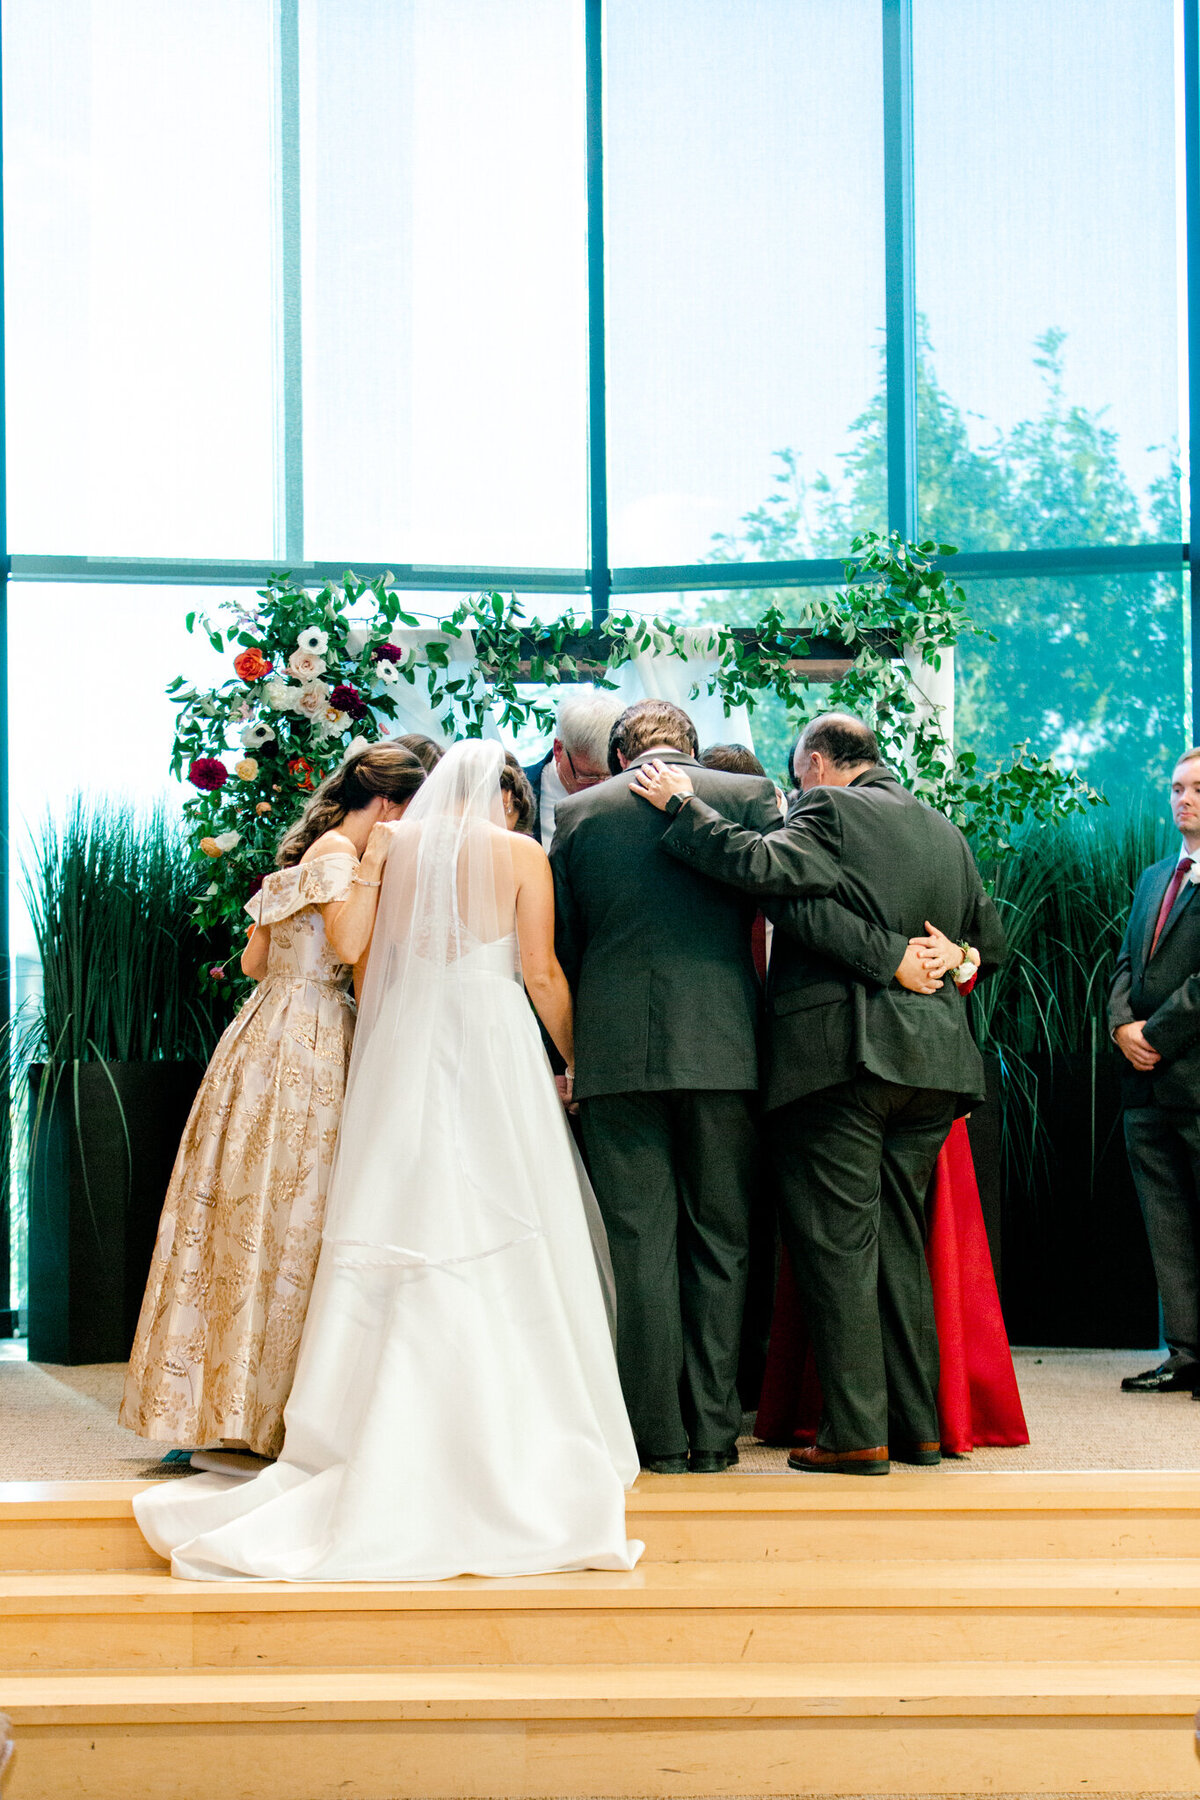 Kaylee & Michael's Wedding at Watermark Community Church | Dallas Wedding Photographer | Sami Kathryn Photography-110